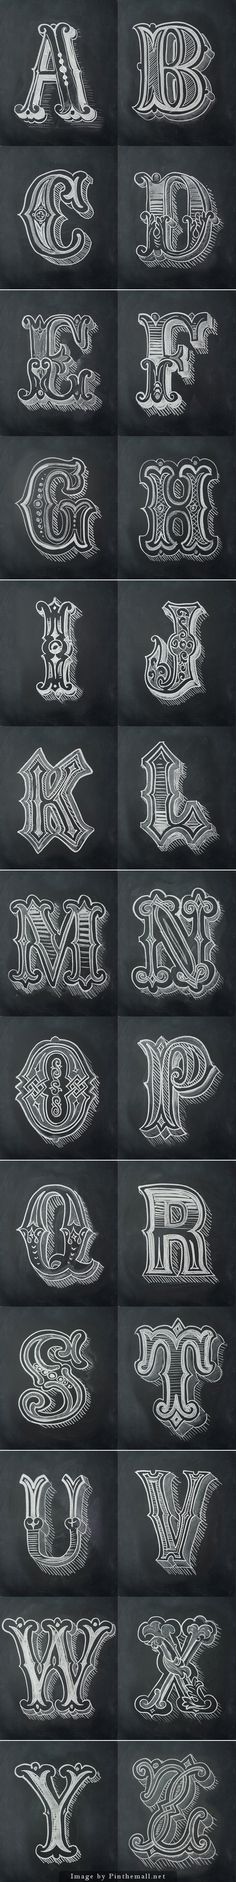 Chalk Alphabet by Antonio Rodrigues Jr... - a grouped images picture - Pin Them All.   The positive an negative spaces balance out nicely with how they swtich on each side of the letter. The designs within the typeface also balance out with the negative spaces of the letter.